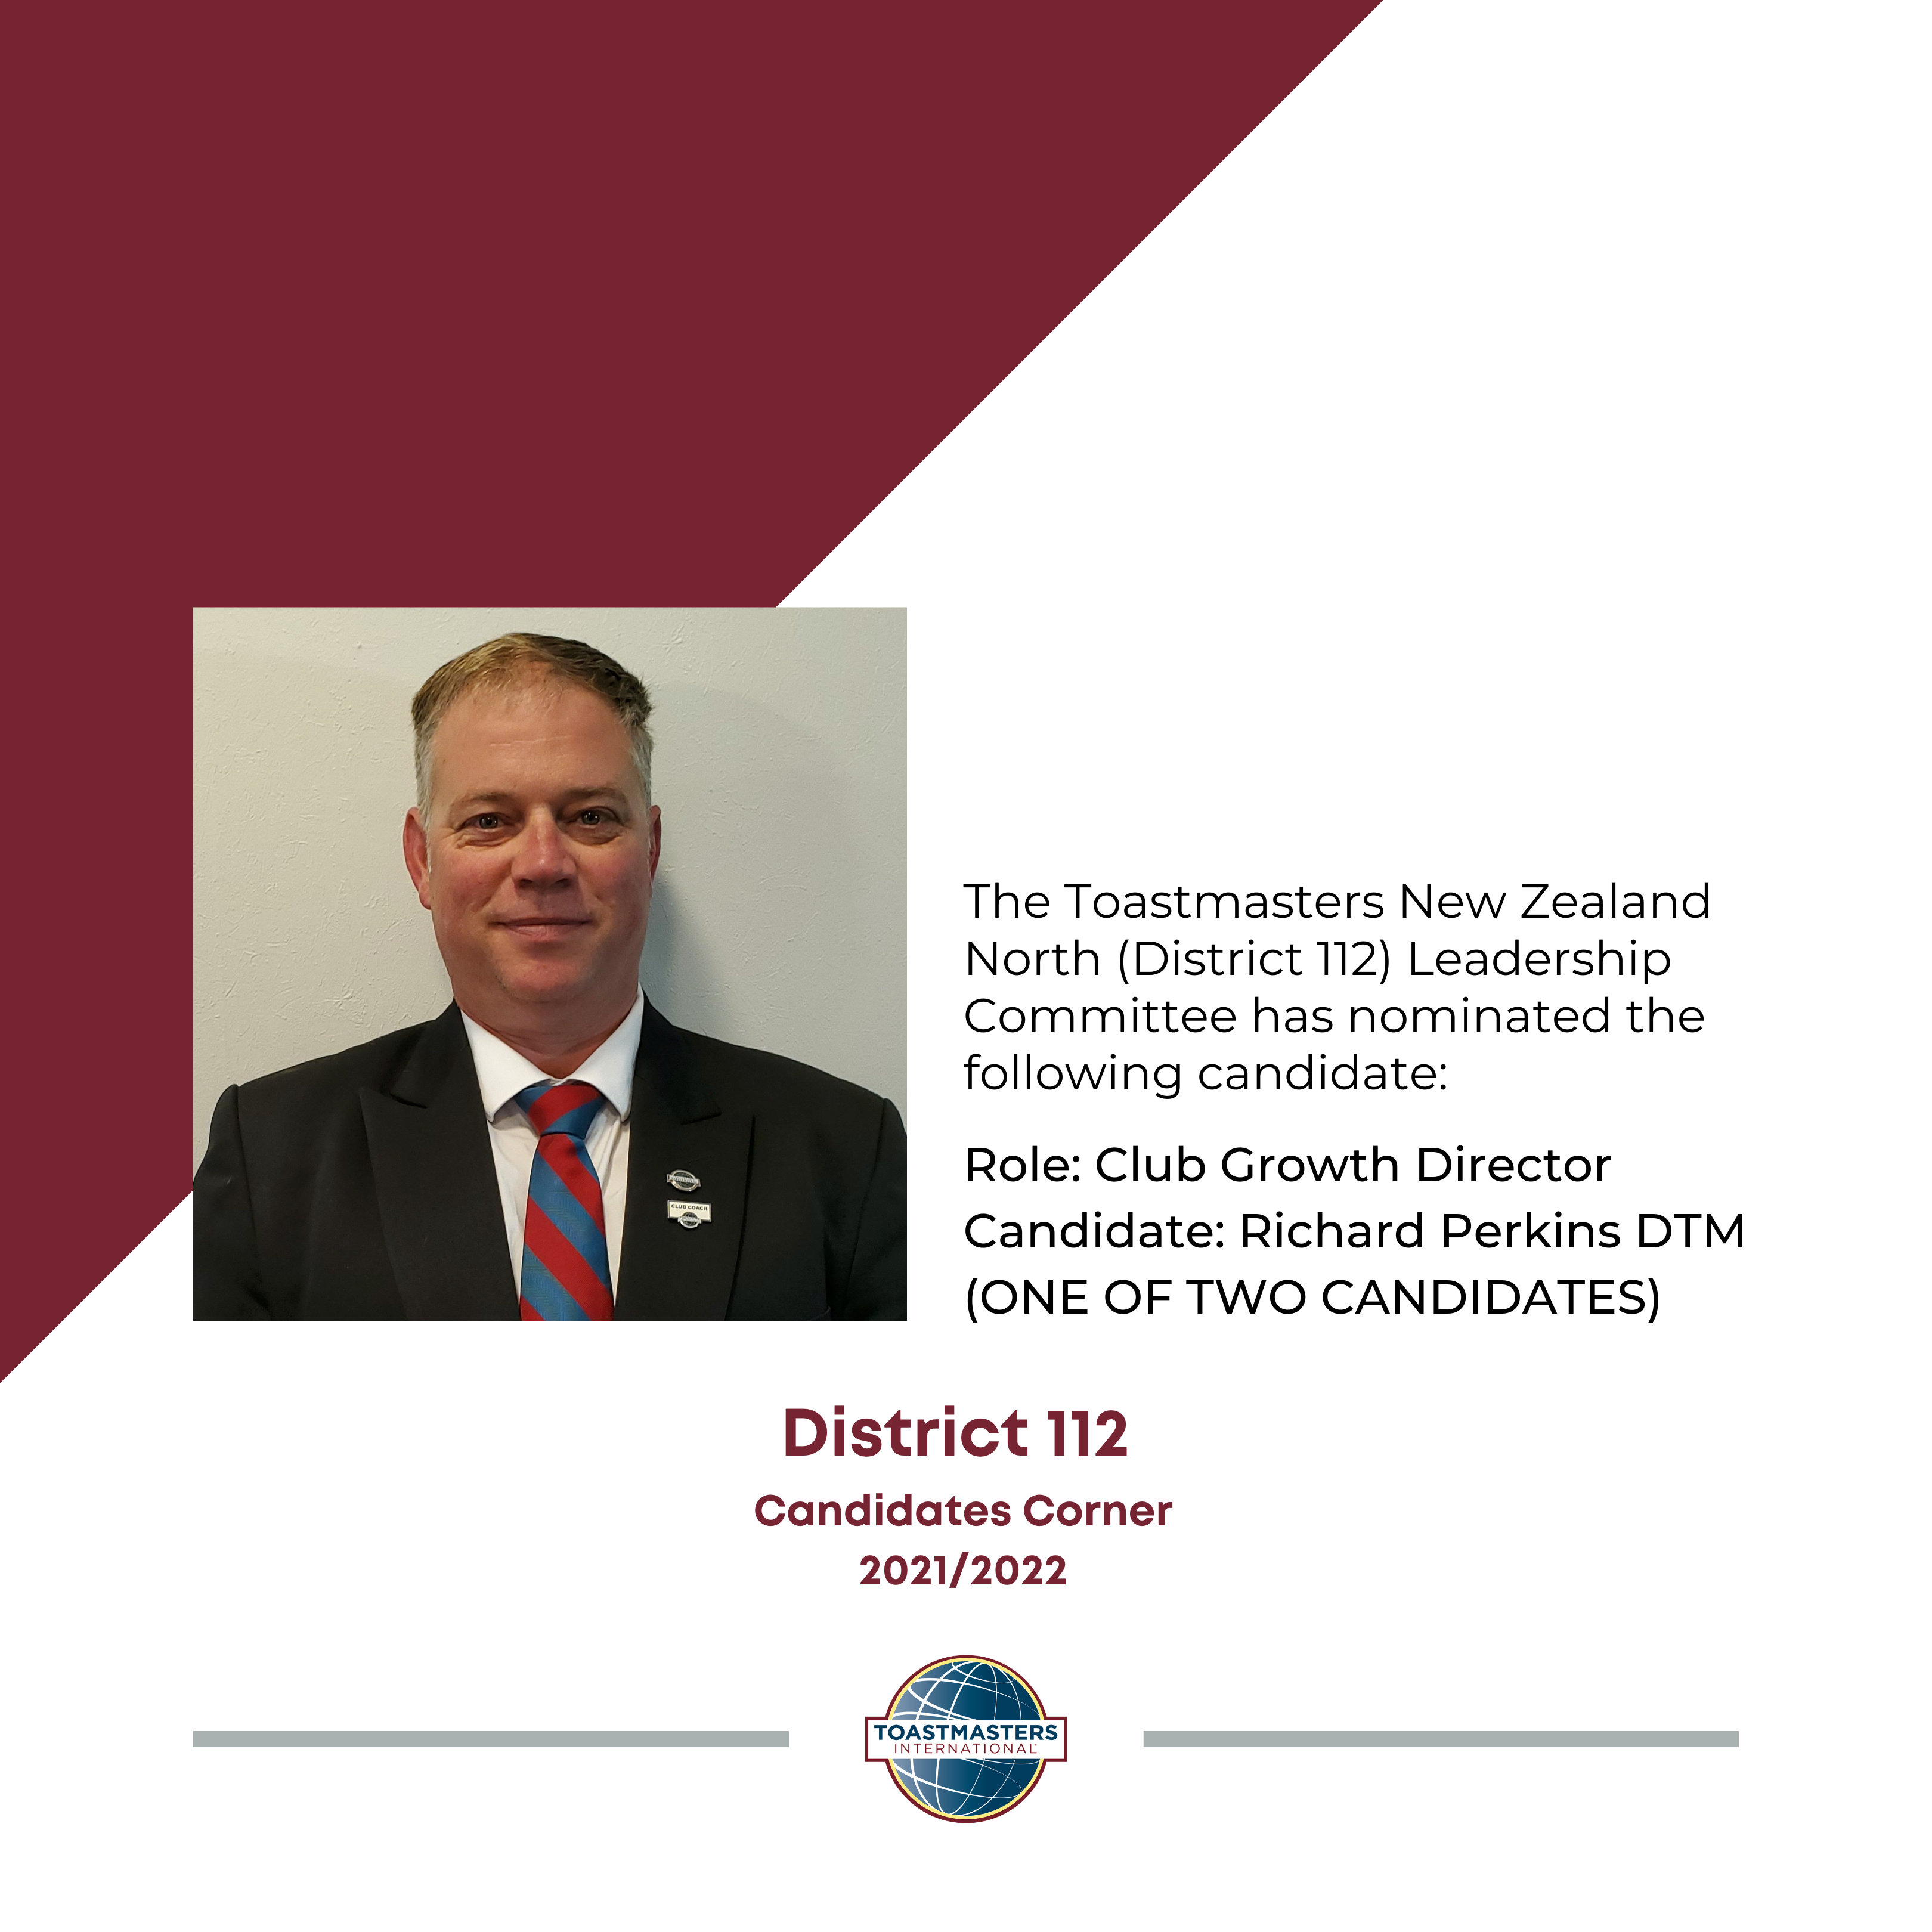 Role: Club Growth Director Candidate: Richard Perkins DTM (ONE OF TWO CANDIDATES)